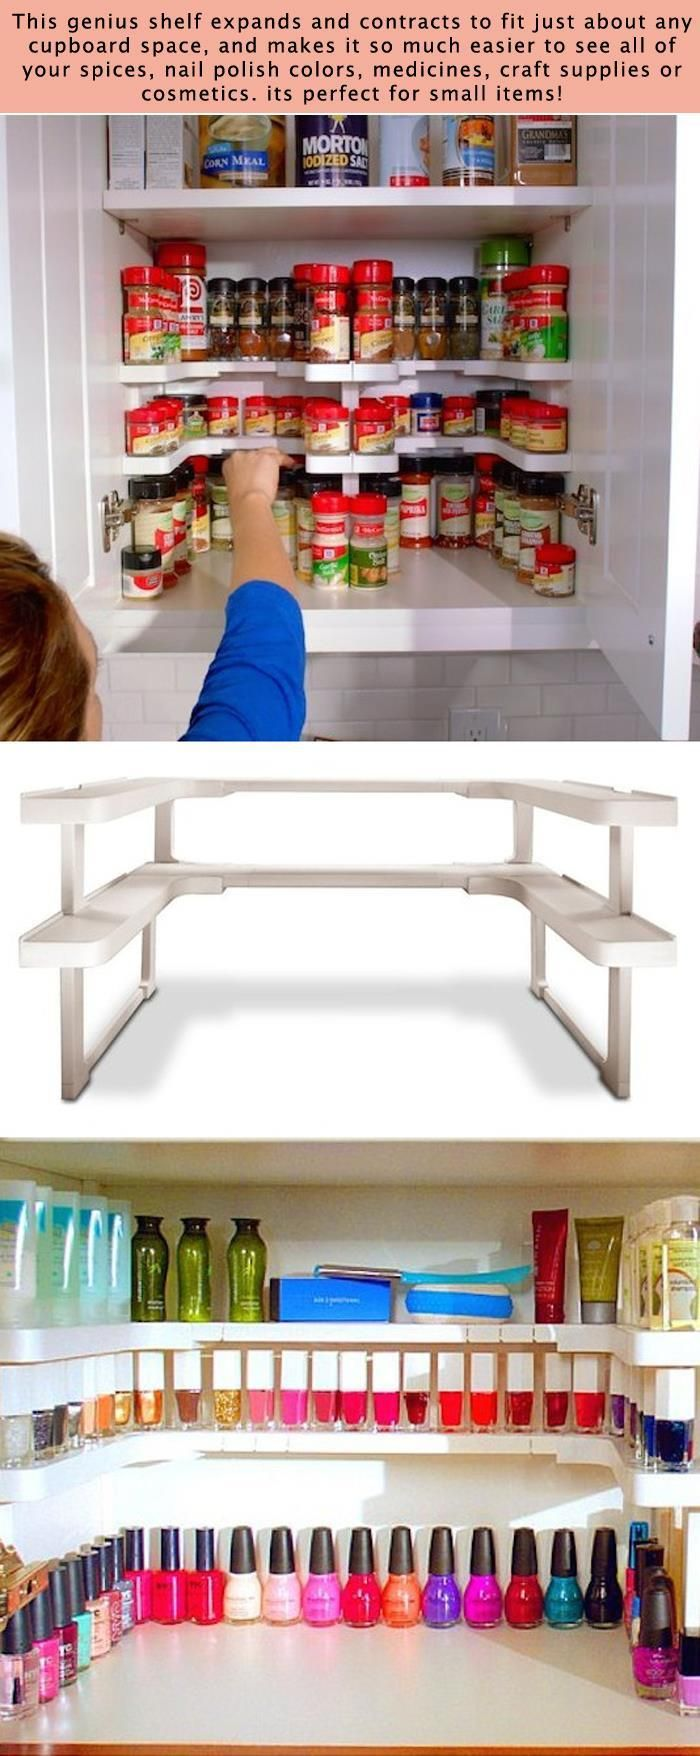 best 20 spice cabinet organize ideas on pinterest small kitchen decorating ideas lazy susan. Black Bedroom Furniture Sets. Home Design Ideas